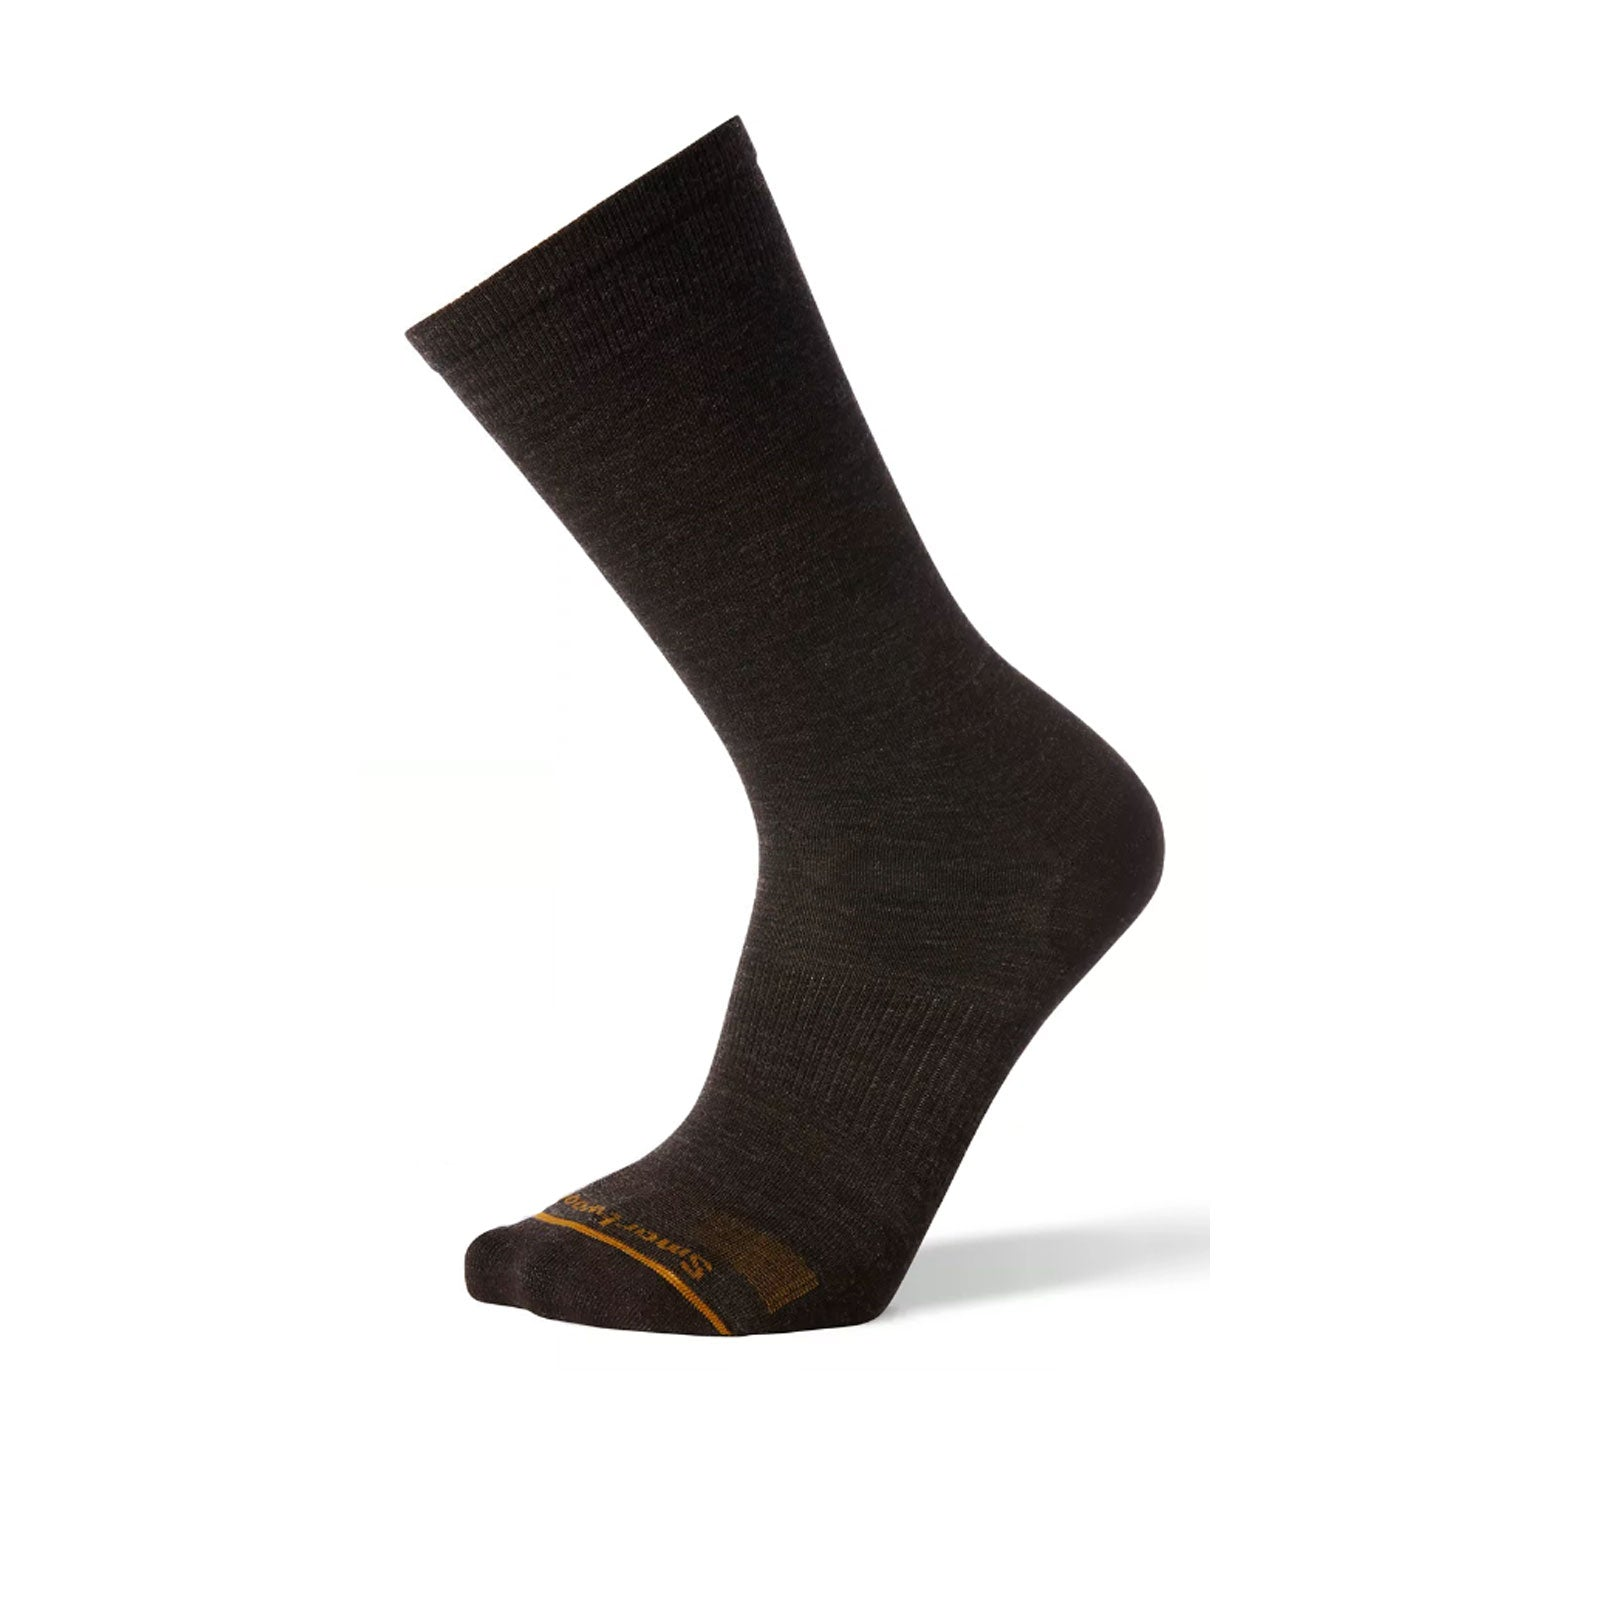 Smartwool Anchor Line Crew (Men) - Chestnut Socks - Life - Crew - The Heel Shoe Fitters